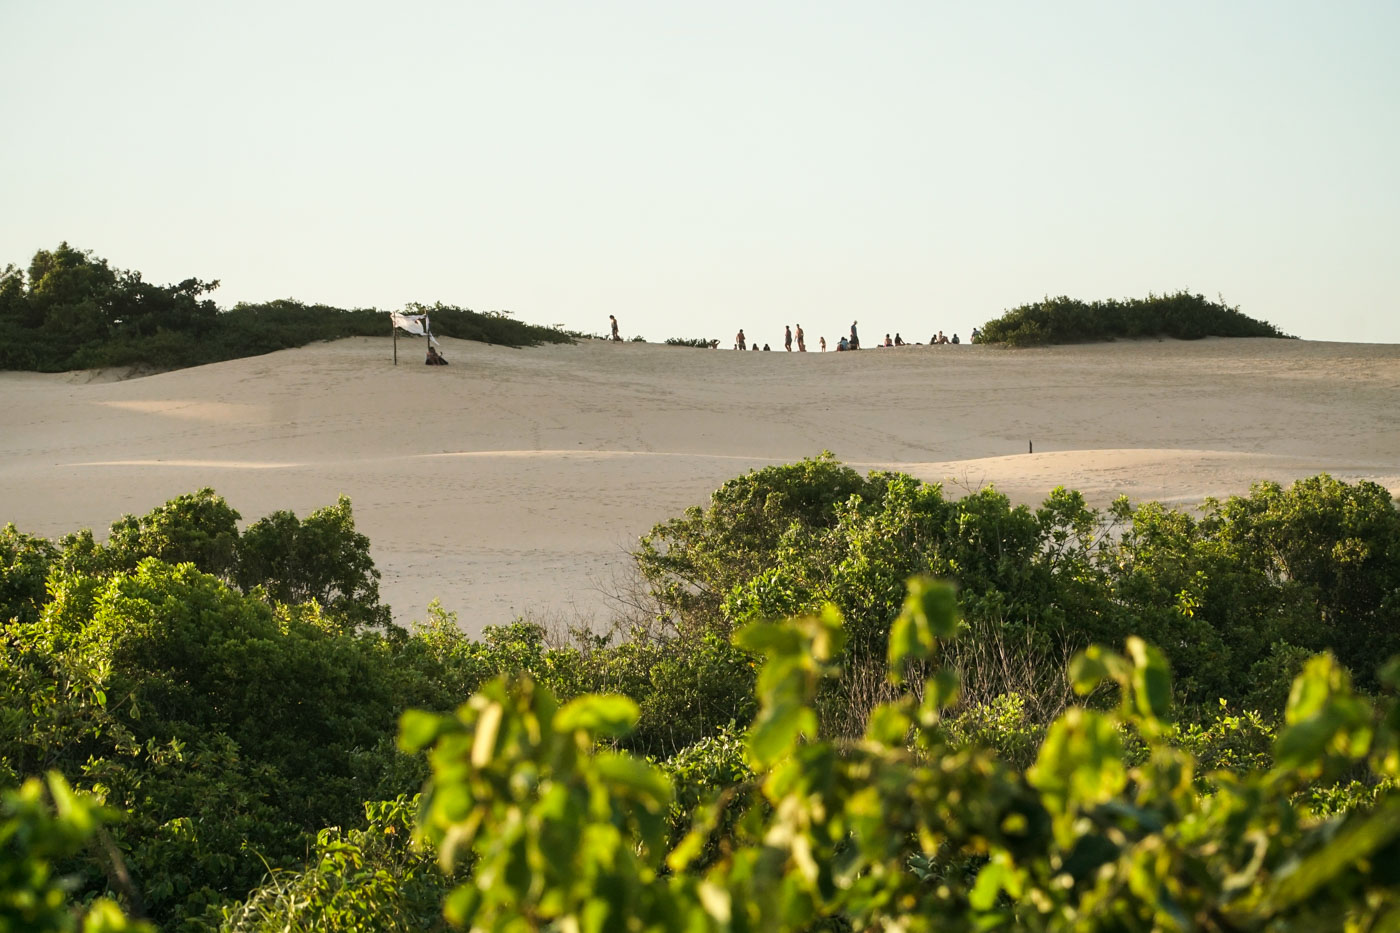 vegetation in front of the dunes of Itaunas